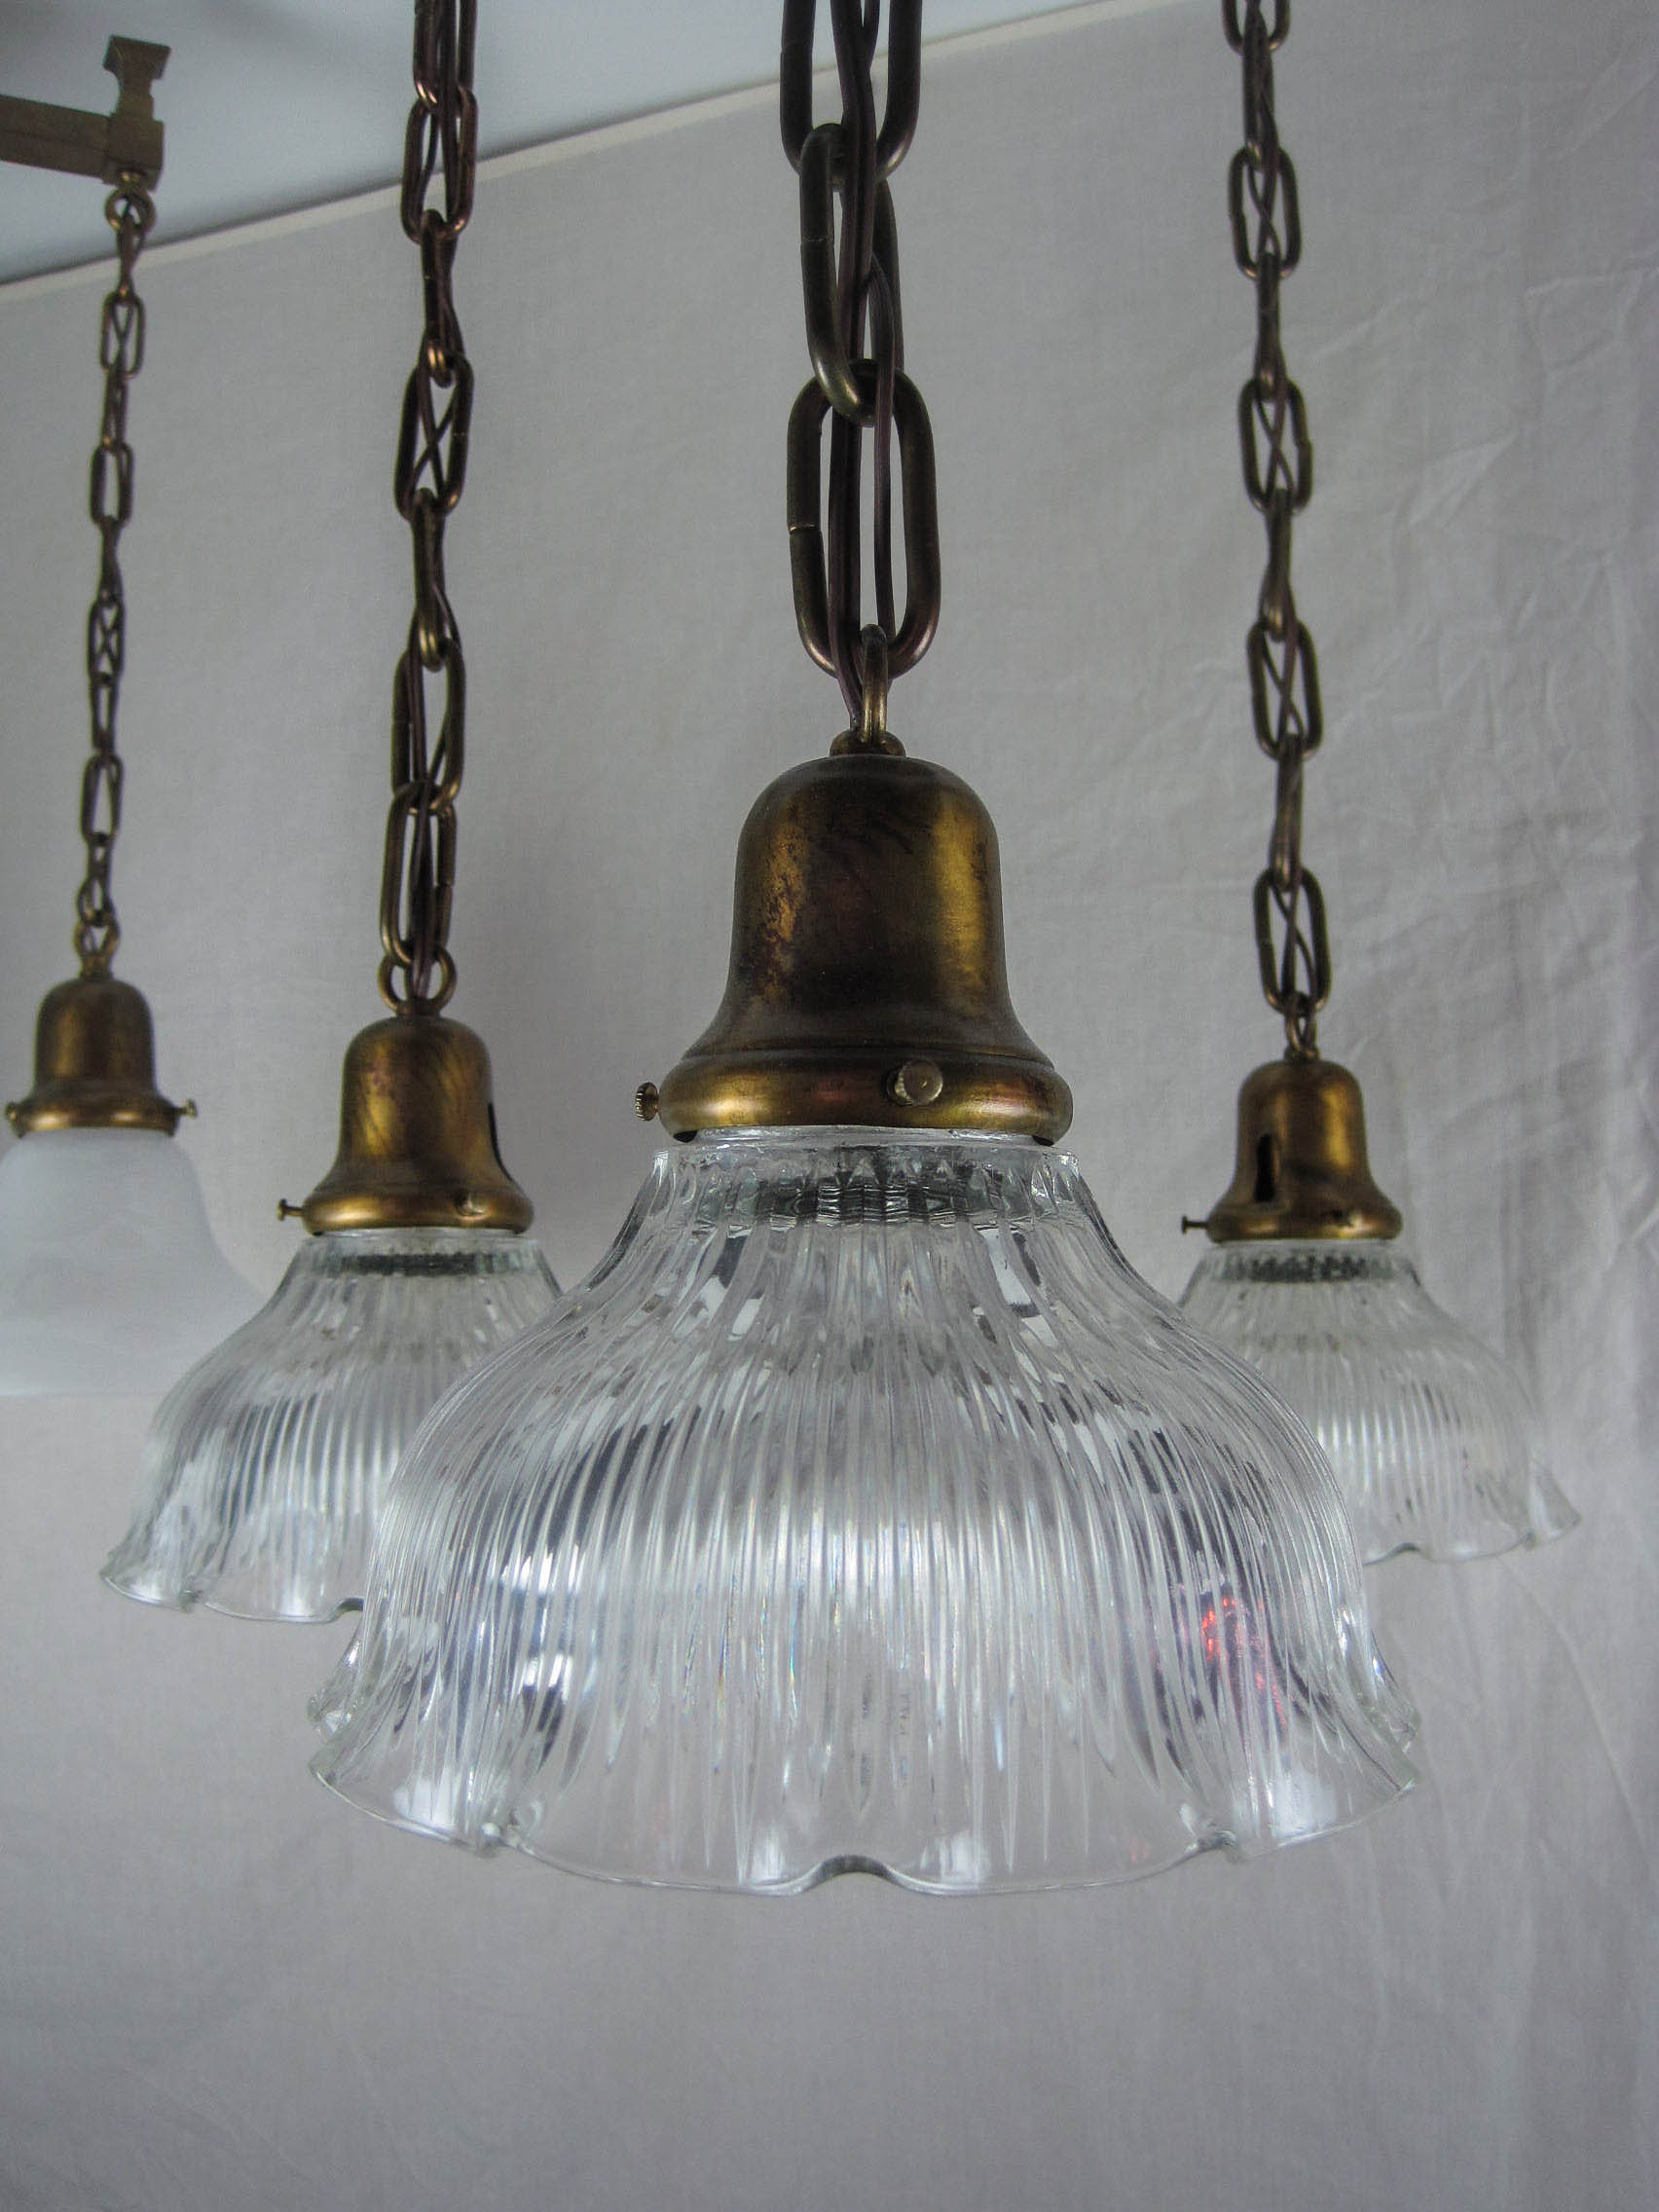 Edwardian Holophane Flush Mount Light Fixture 4 Light